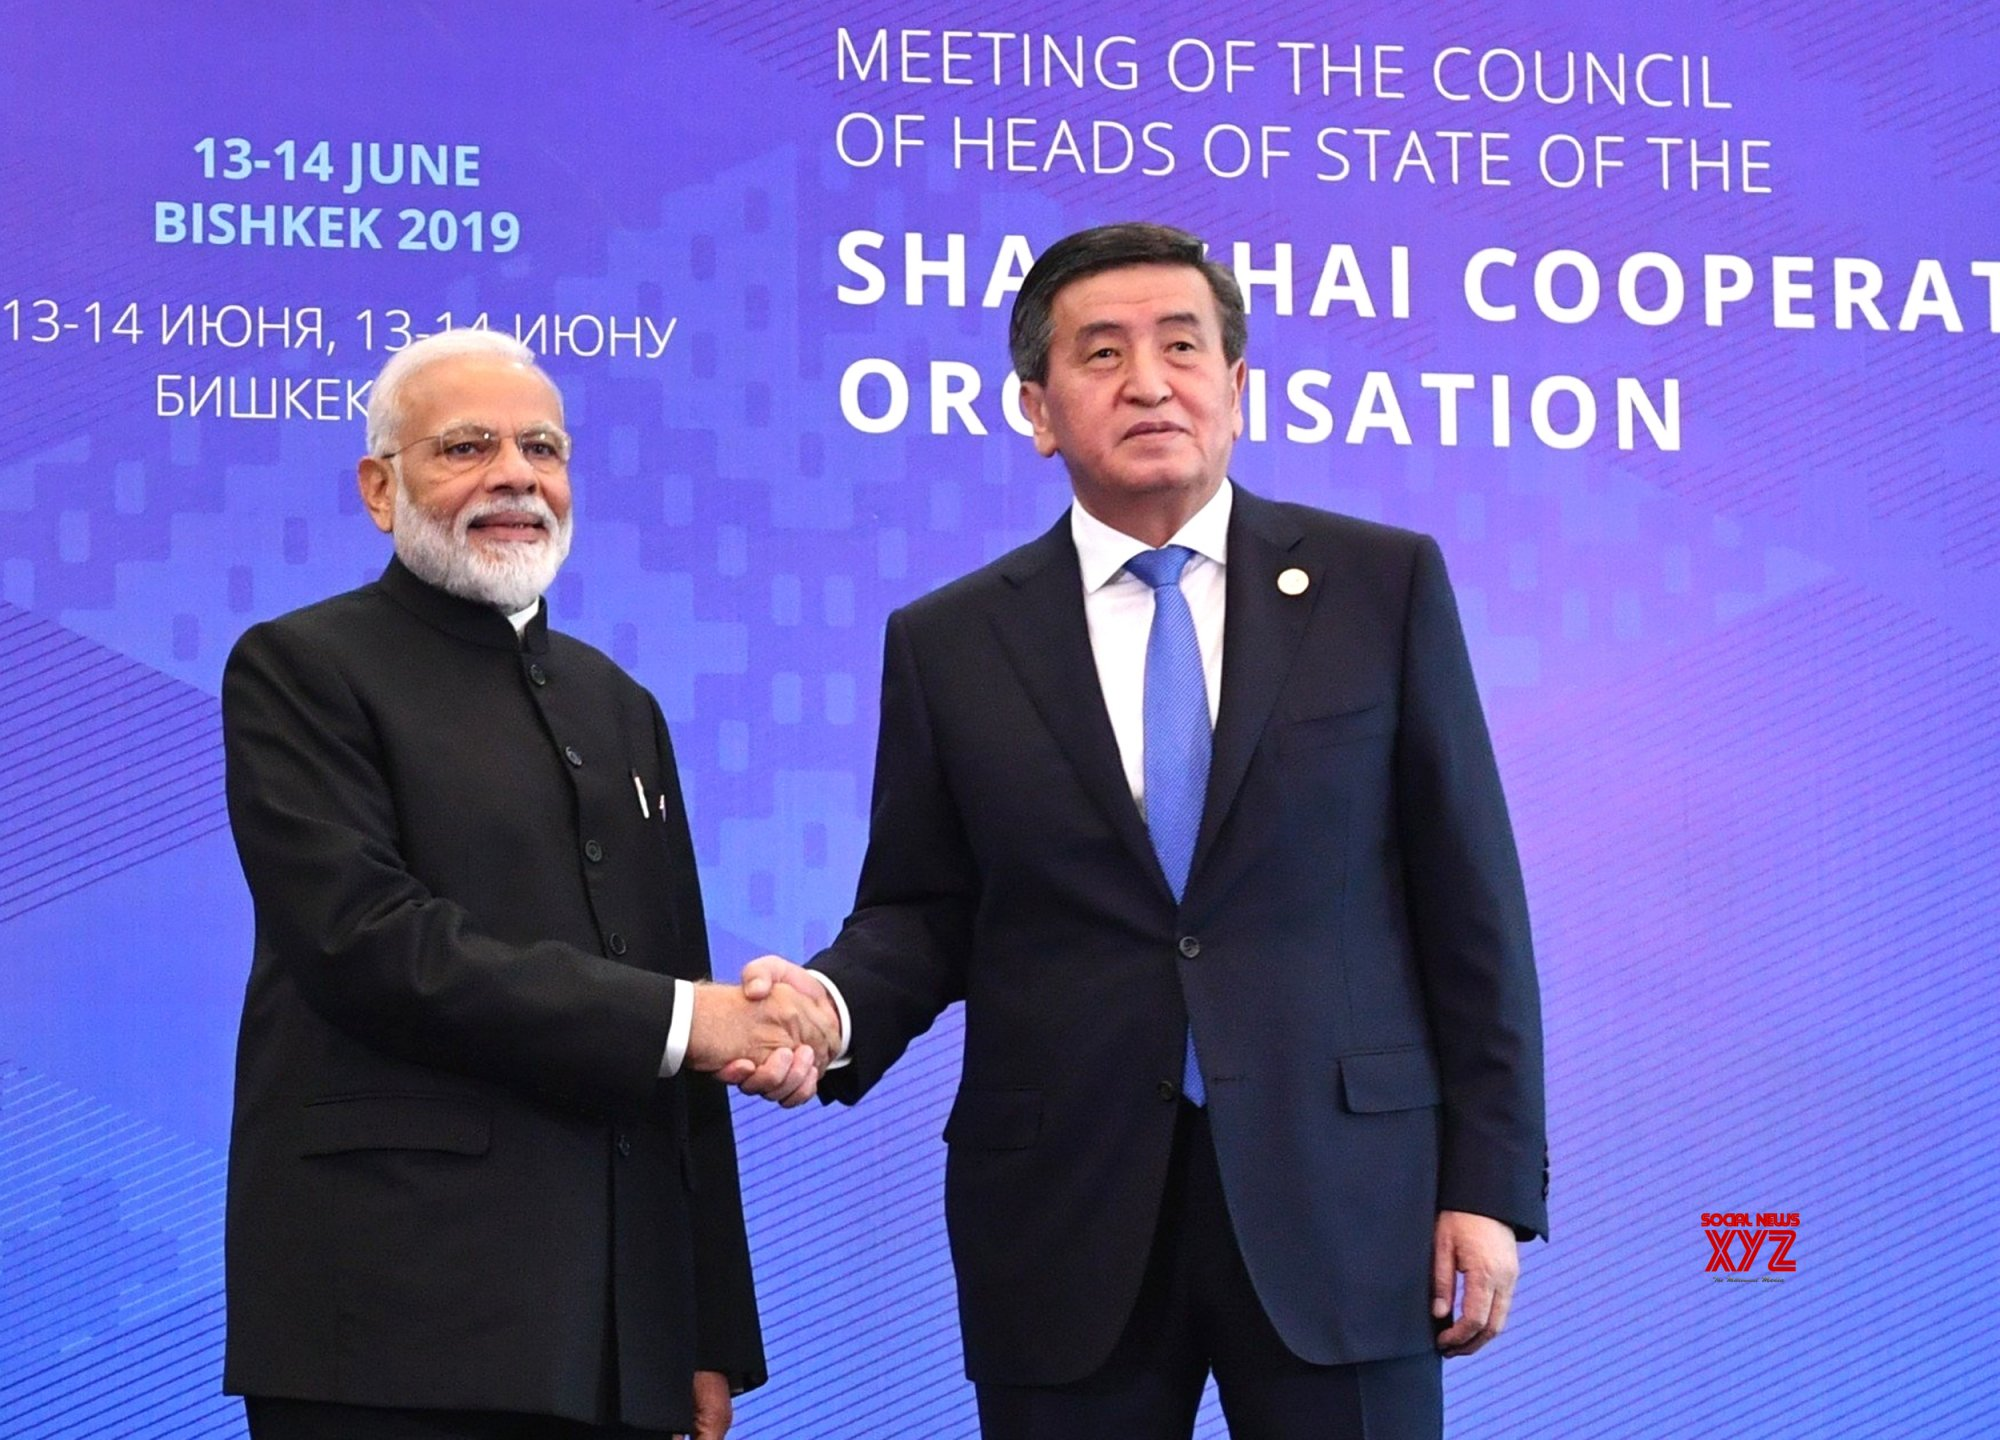 Bishkek: PM Modi welcomed by Kyrgyzstan President at the SCO Summit #Gallery